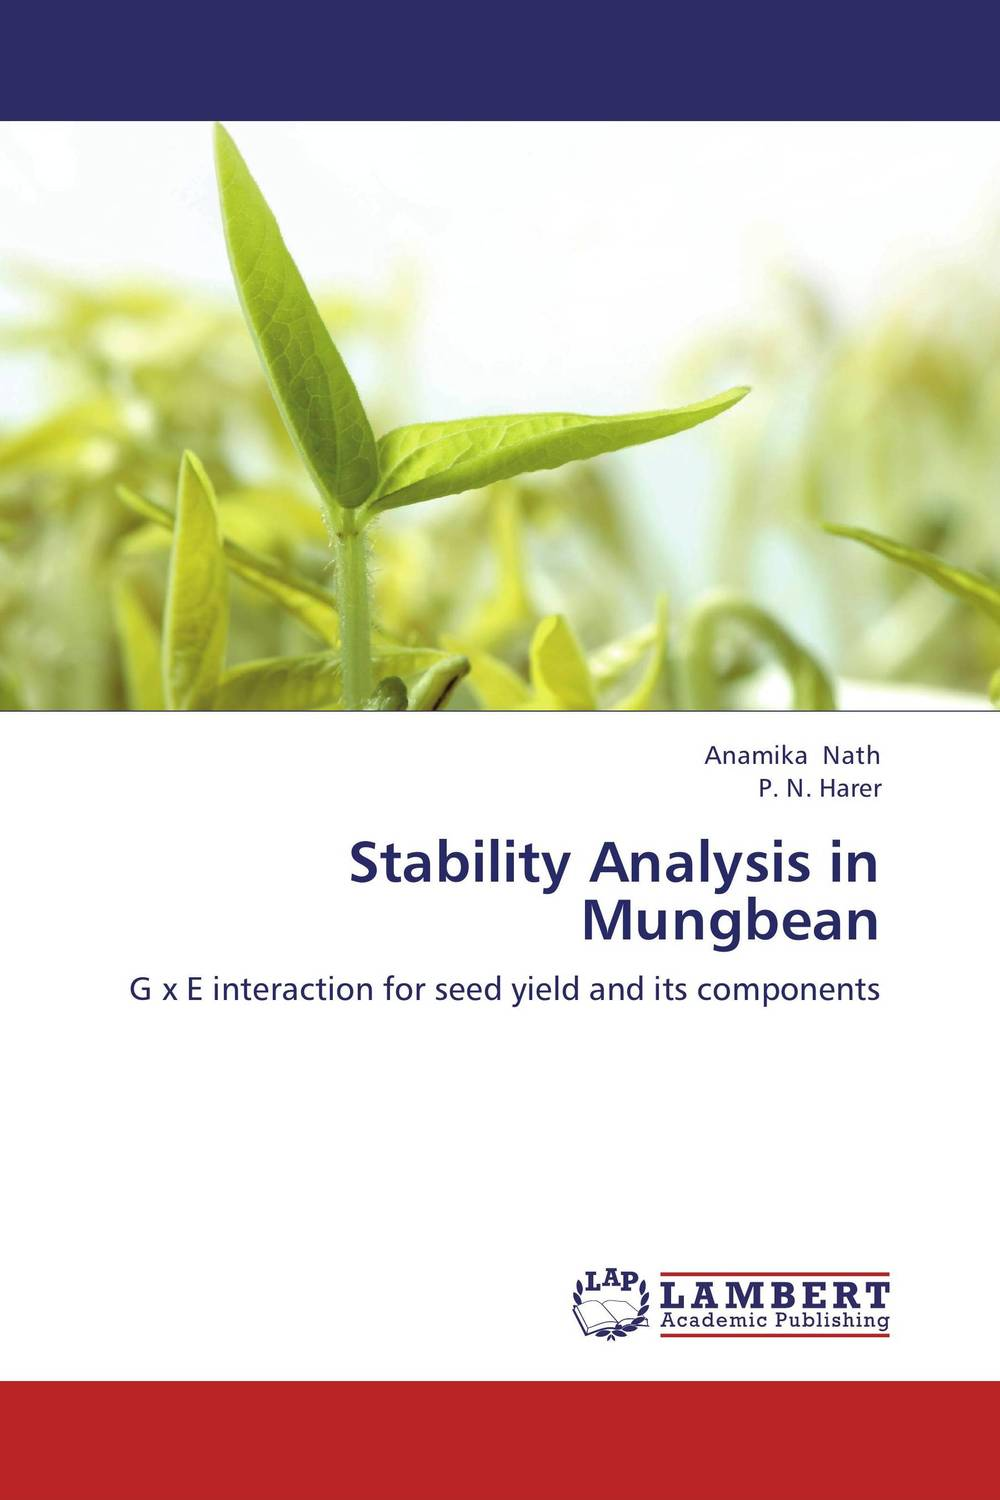 Stability Analysis in Mungbean stem bromelain in silico analysis for stability and modification